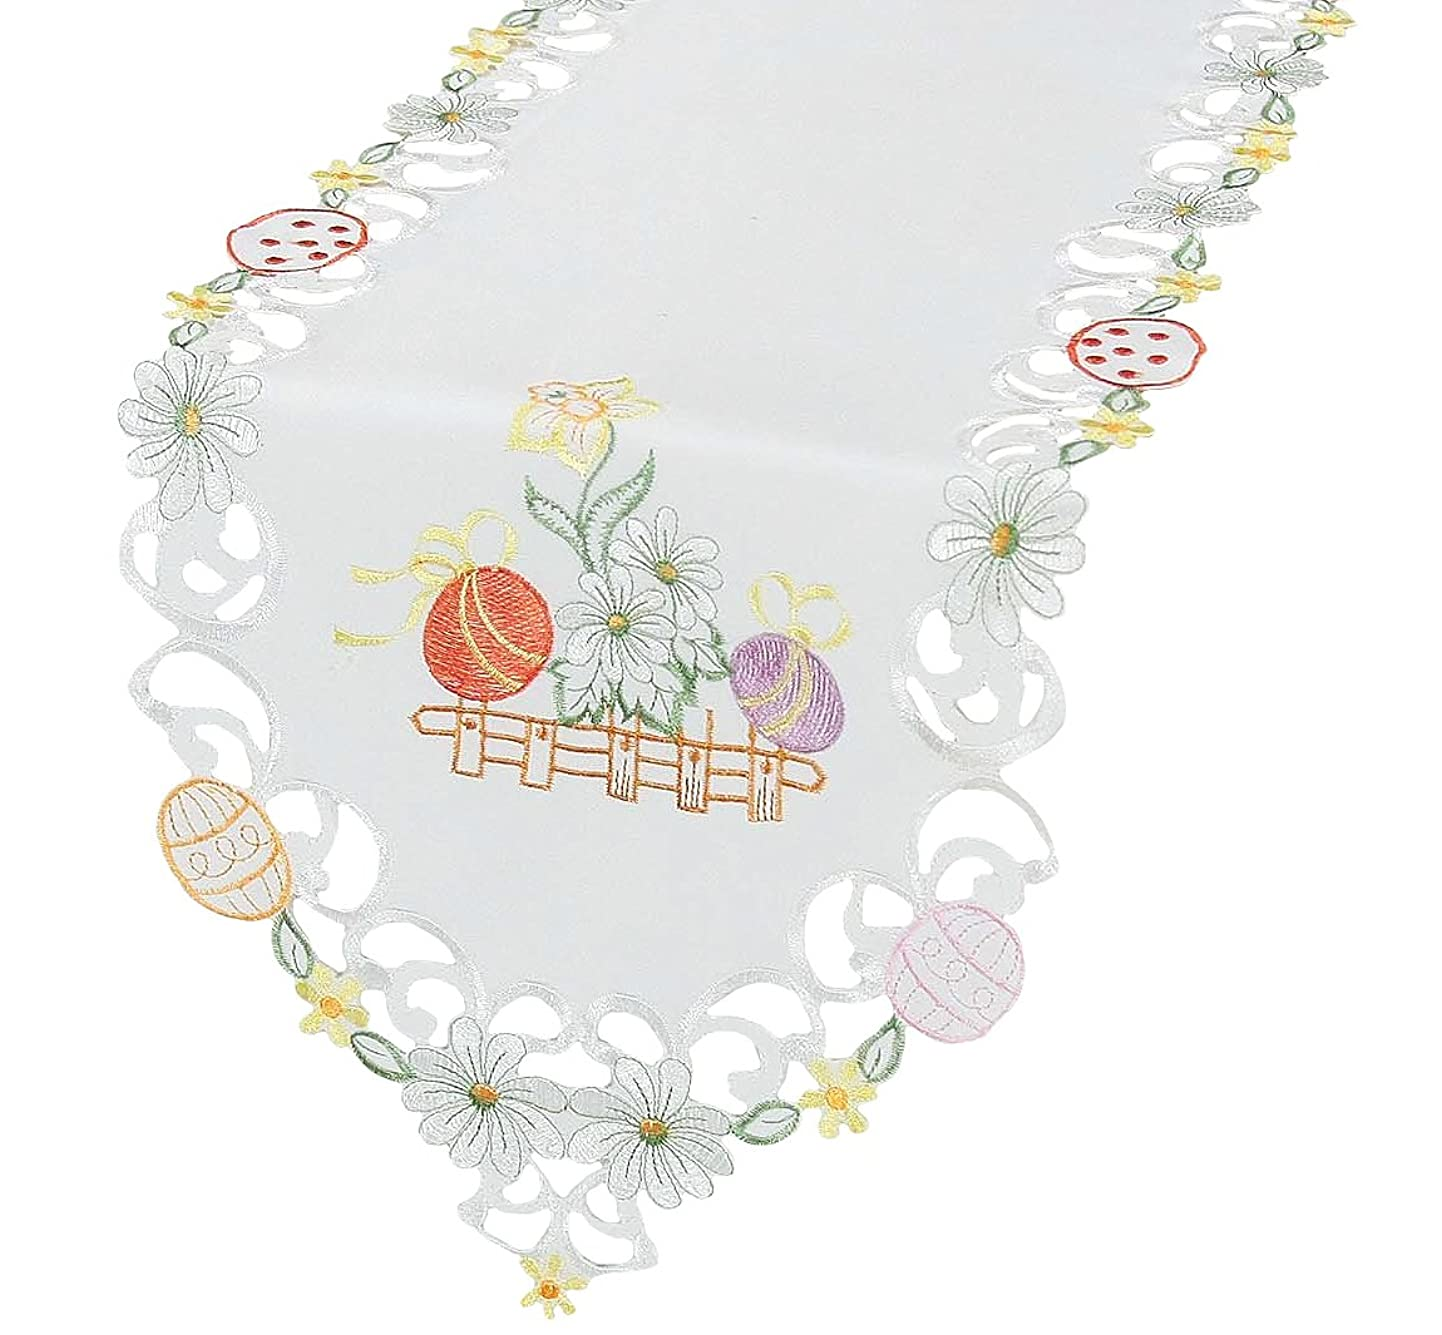 Xia Home Fashions Country Egg Embroidered Cutwork Easter Table Runner, 15 by 70-Inch dfbzyalglge4